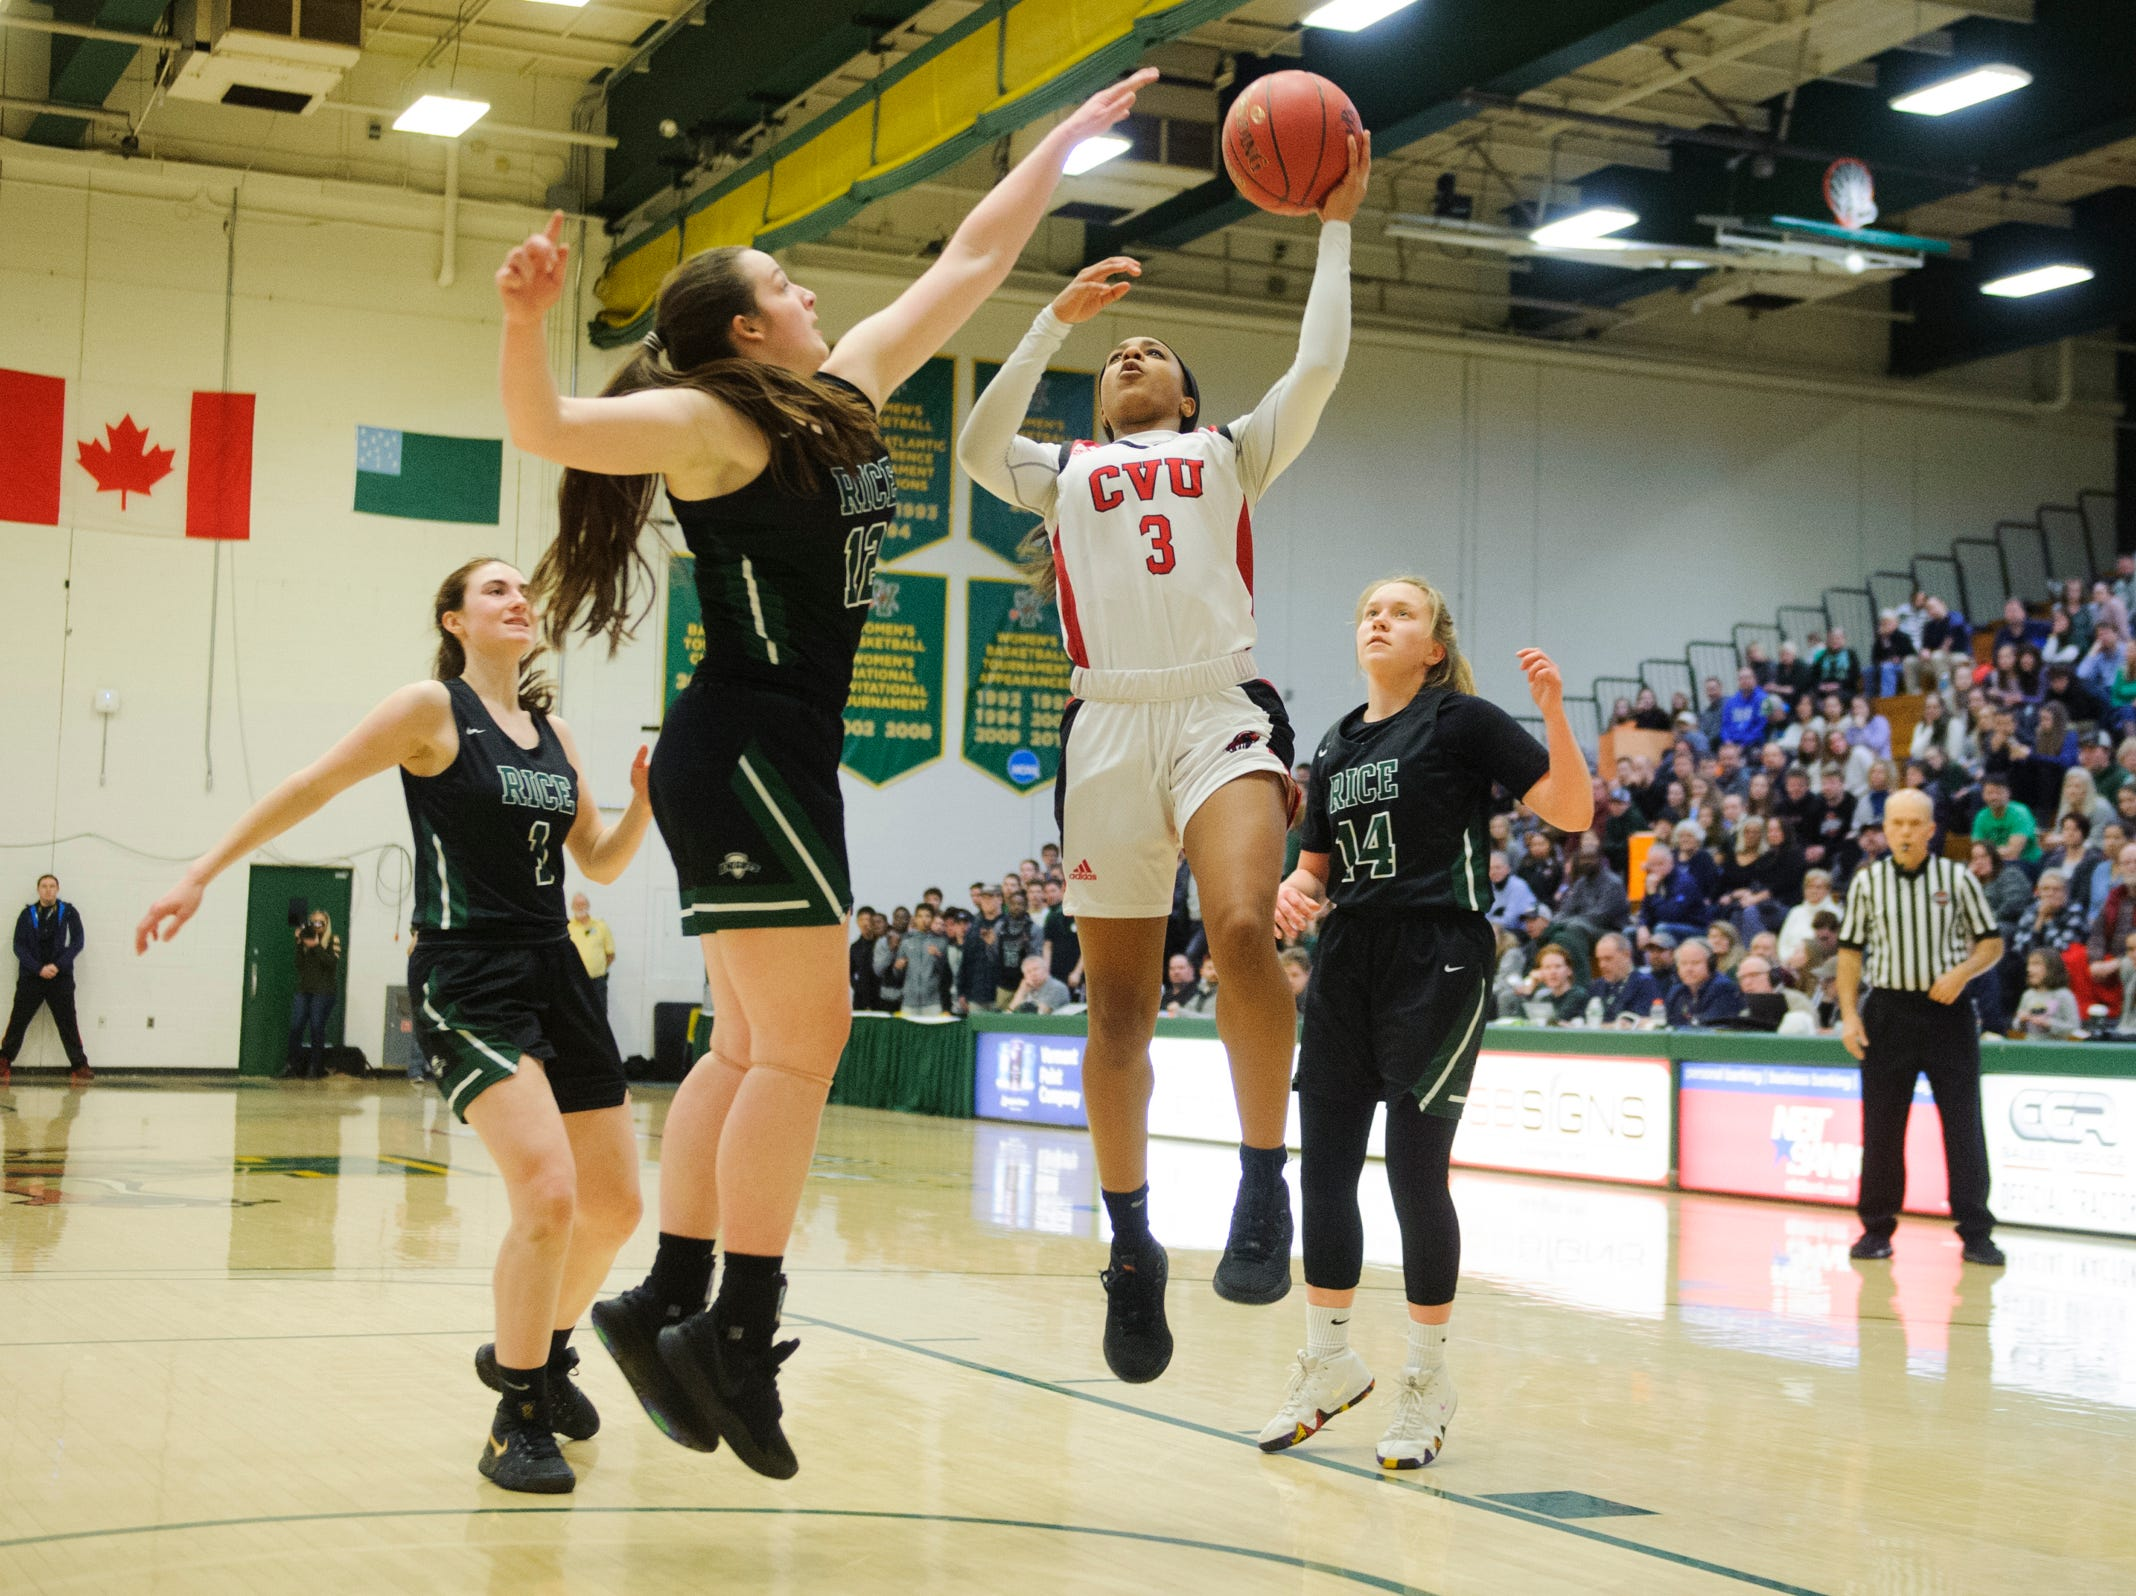 CVU's Mekkena Boyd (3) leaps for a lay up over Rice's Maddy McElroy (12) during the girls semifinal basketball game between the Rice Green Knights and the Champlain Valley Union Redhawks at Patrick Gym on Wednesday nigh March 6, 2019 in Burlington, Vermont.